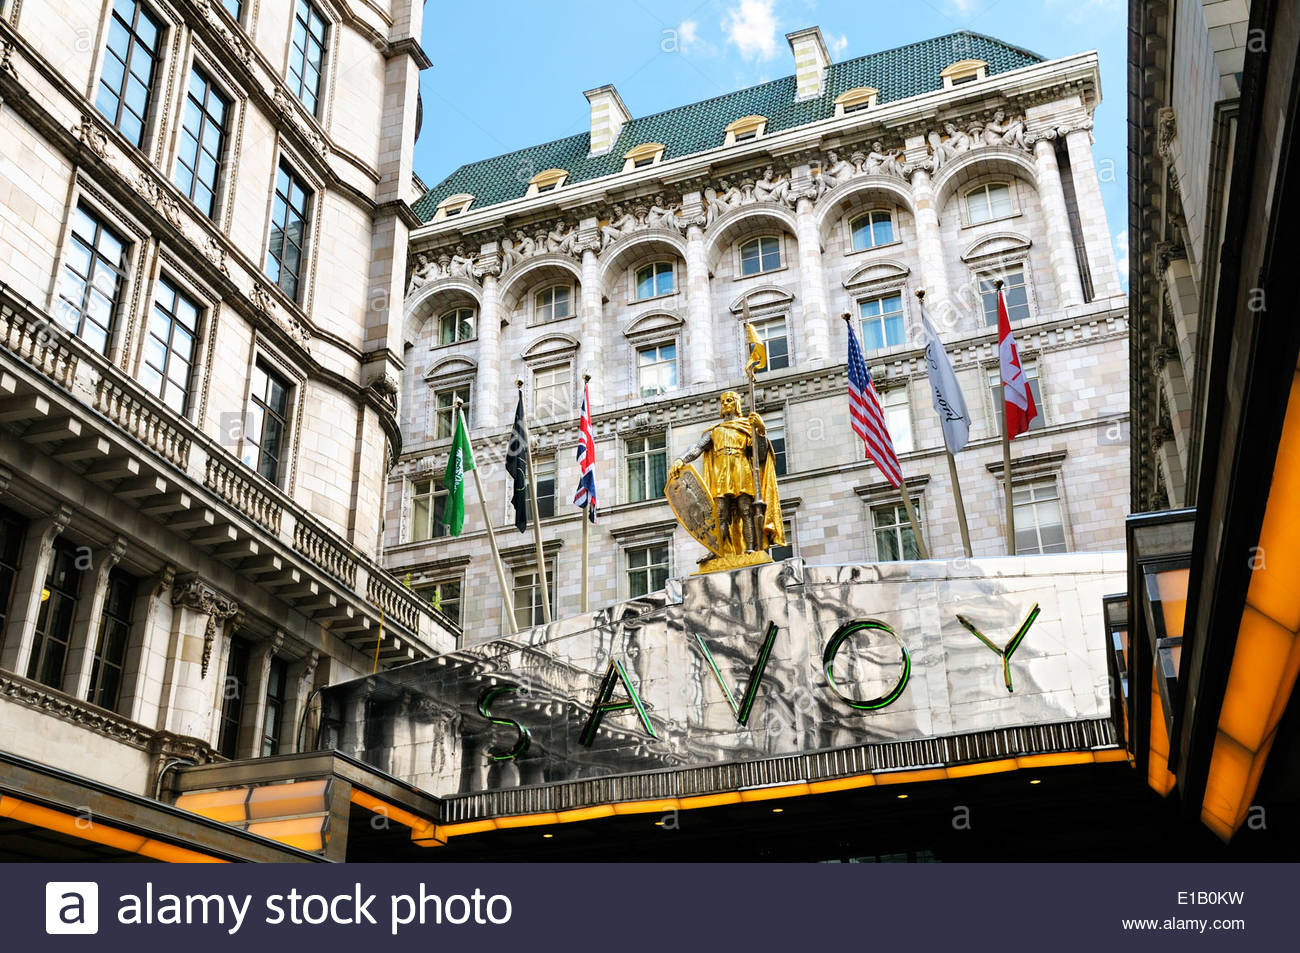 The Savoy Hotel, London, England, UK - Stock Image